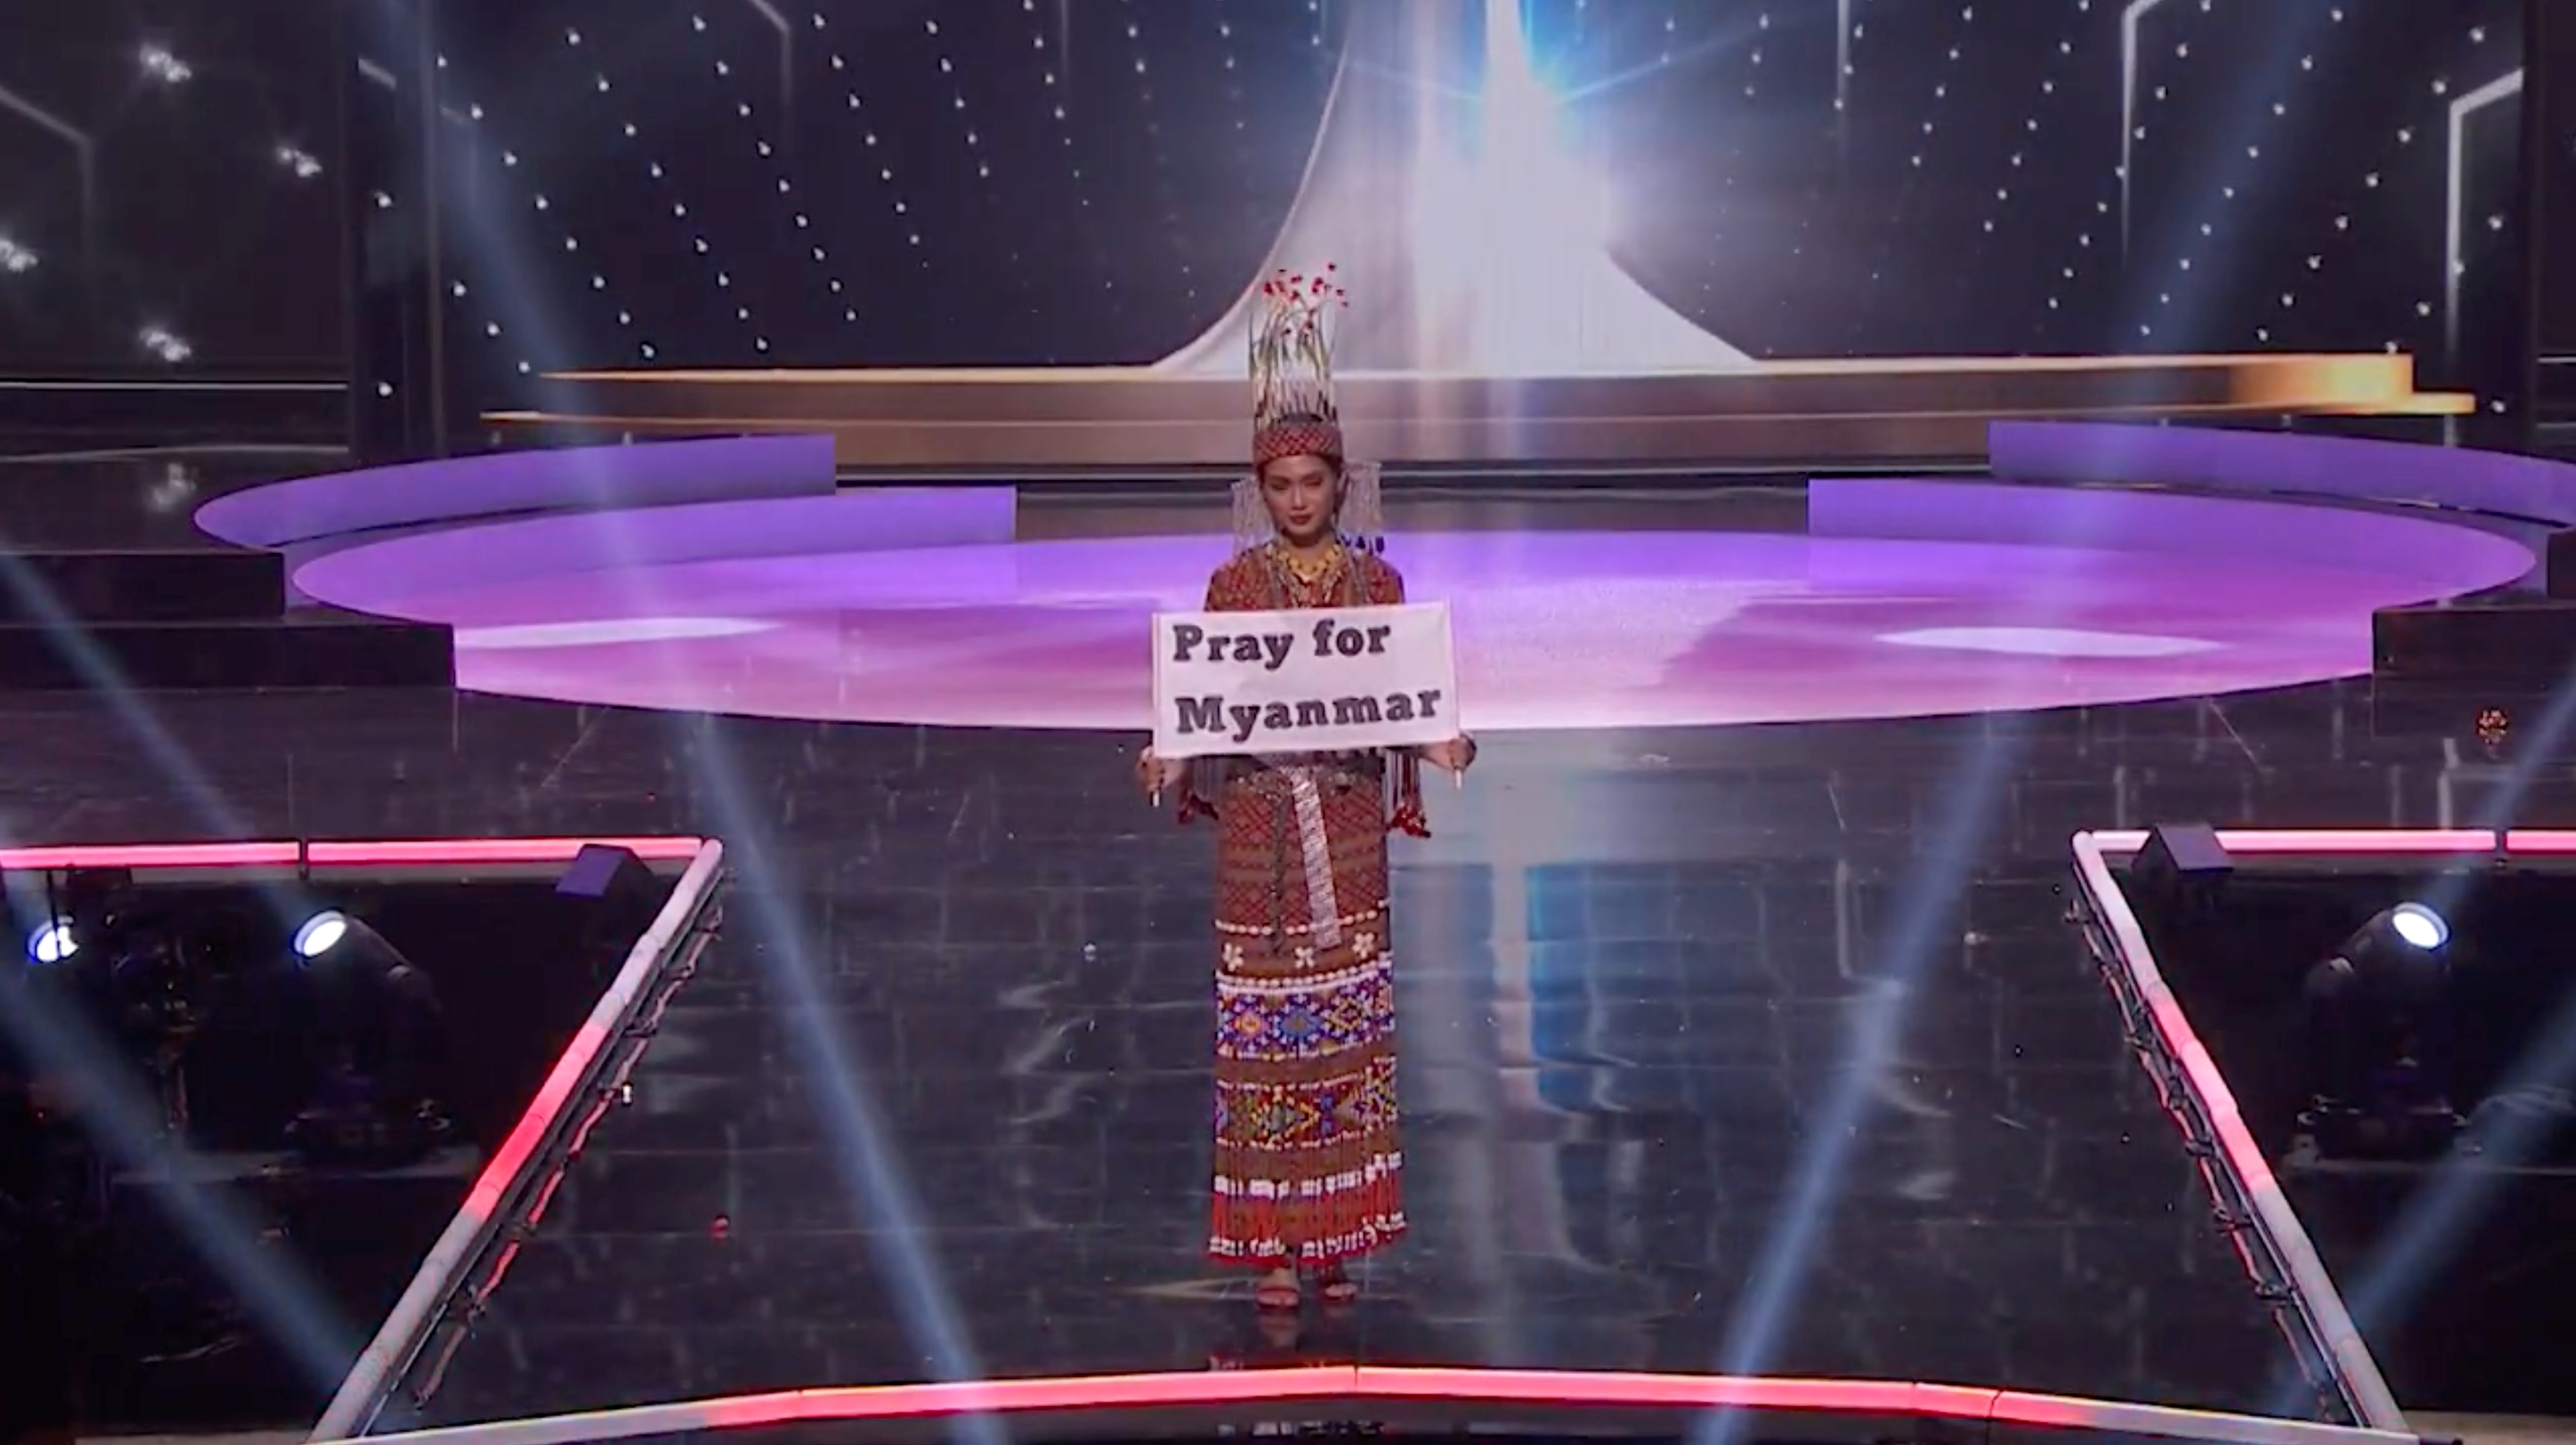 Ma Thuzar Wint Lwin, Miss Universe Myanmar, holds the